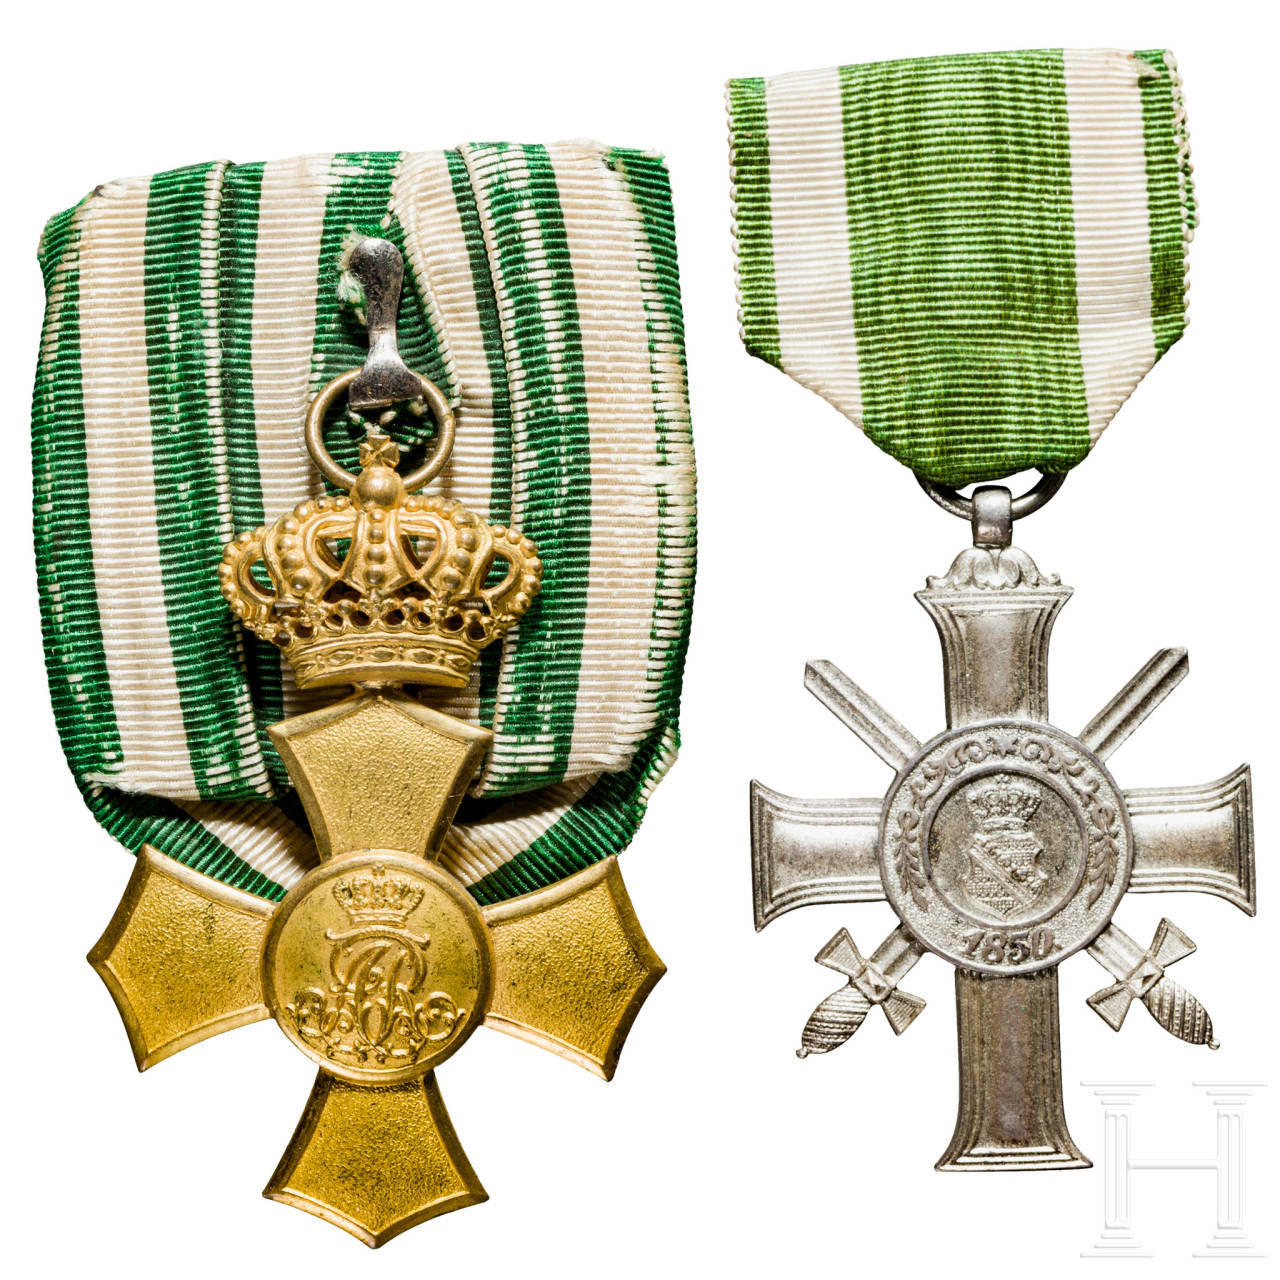 Albrecht Cross with swords and Honour Cross with crown